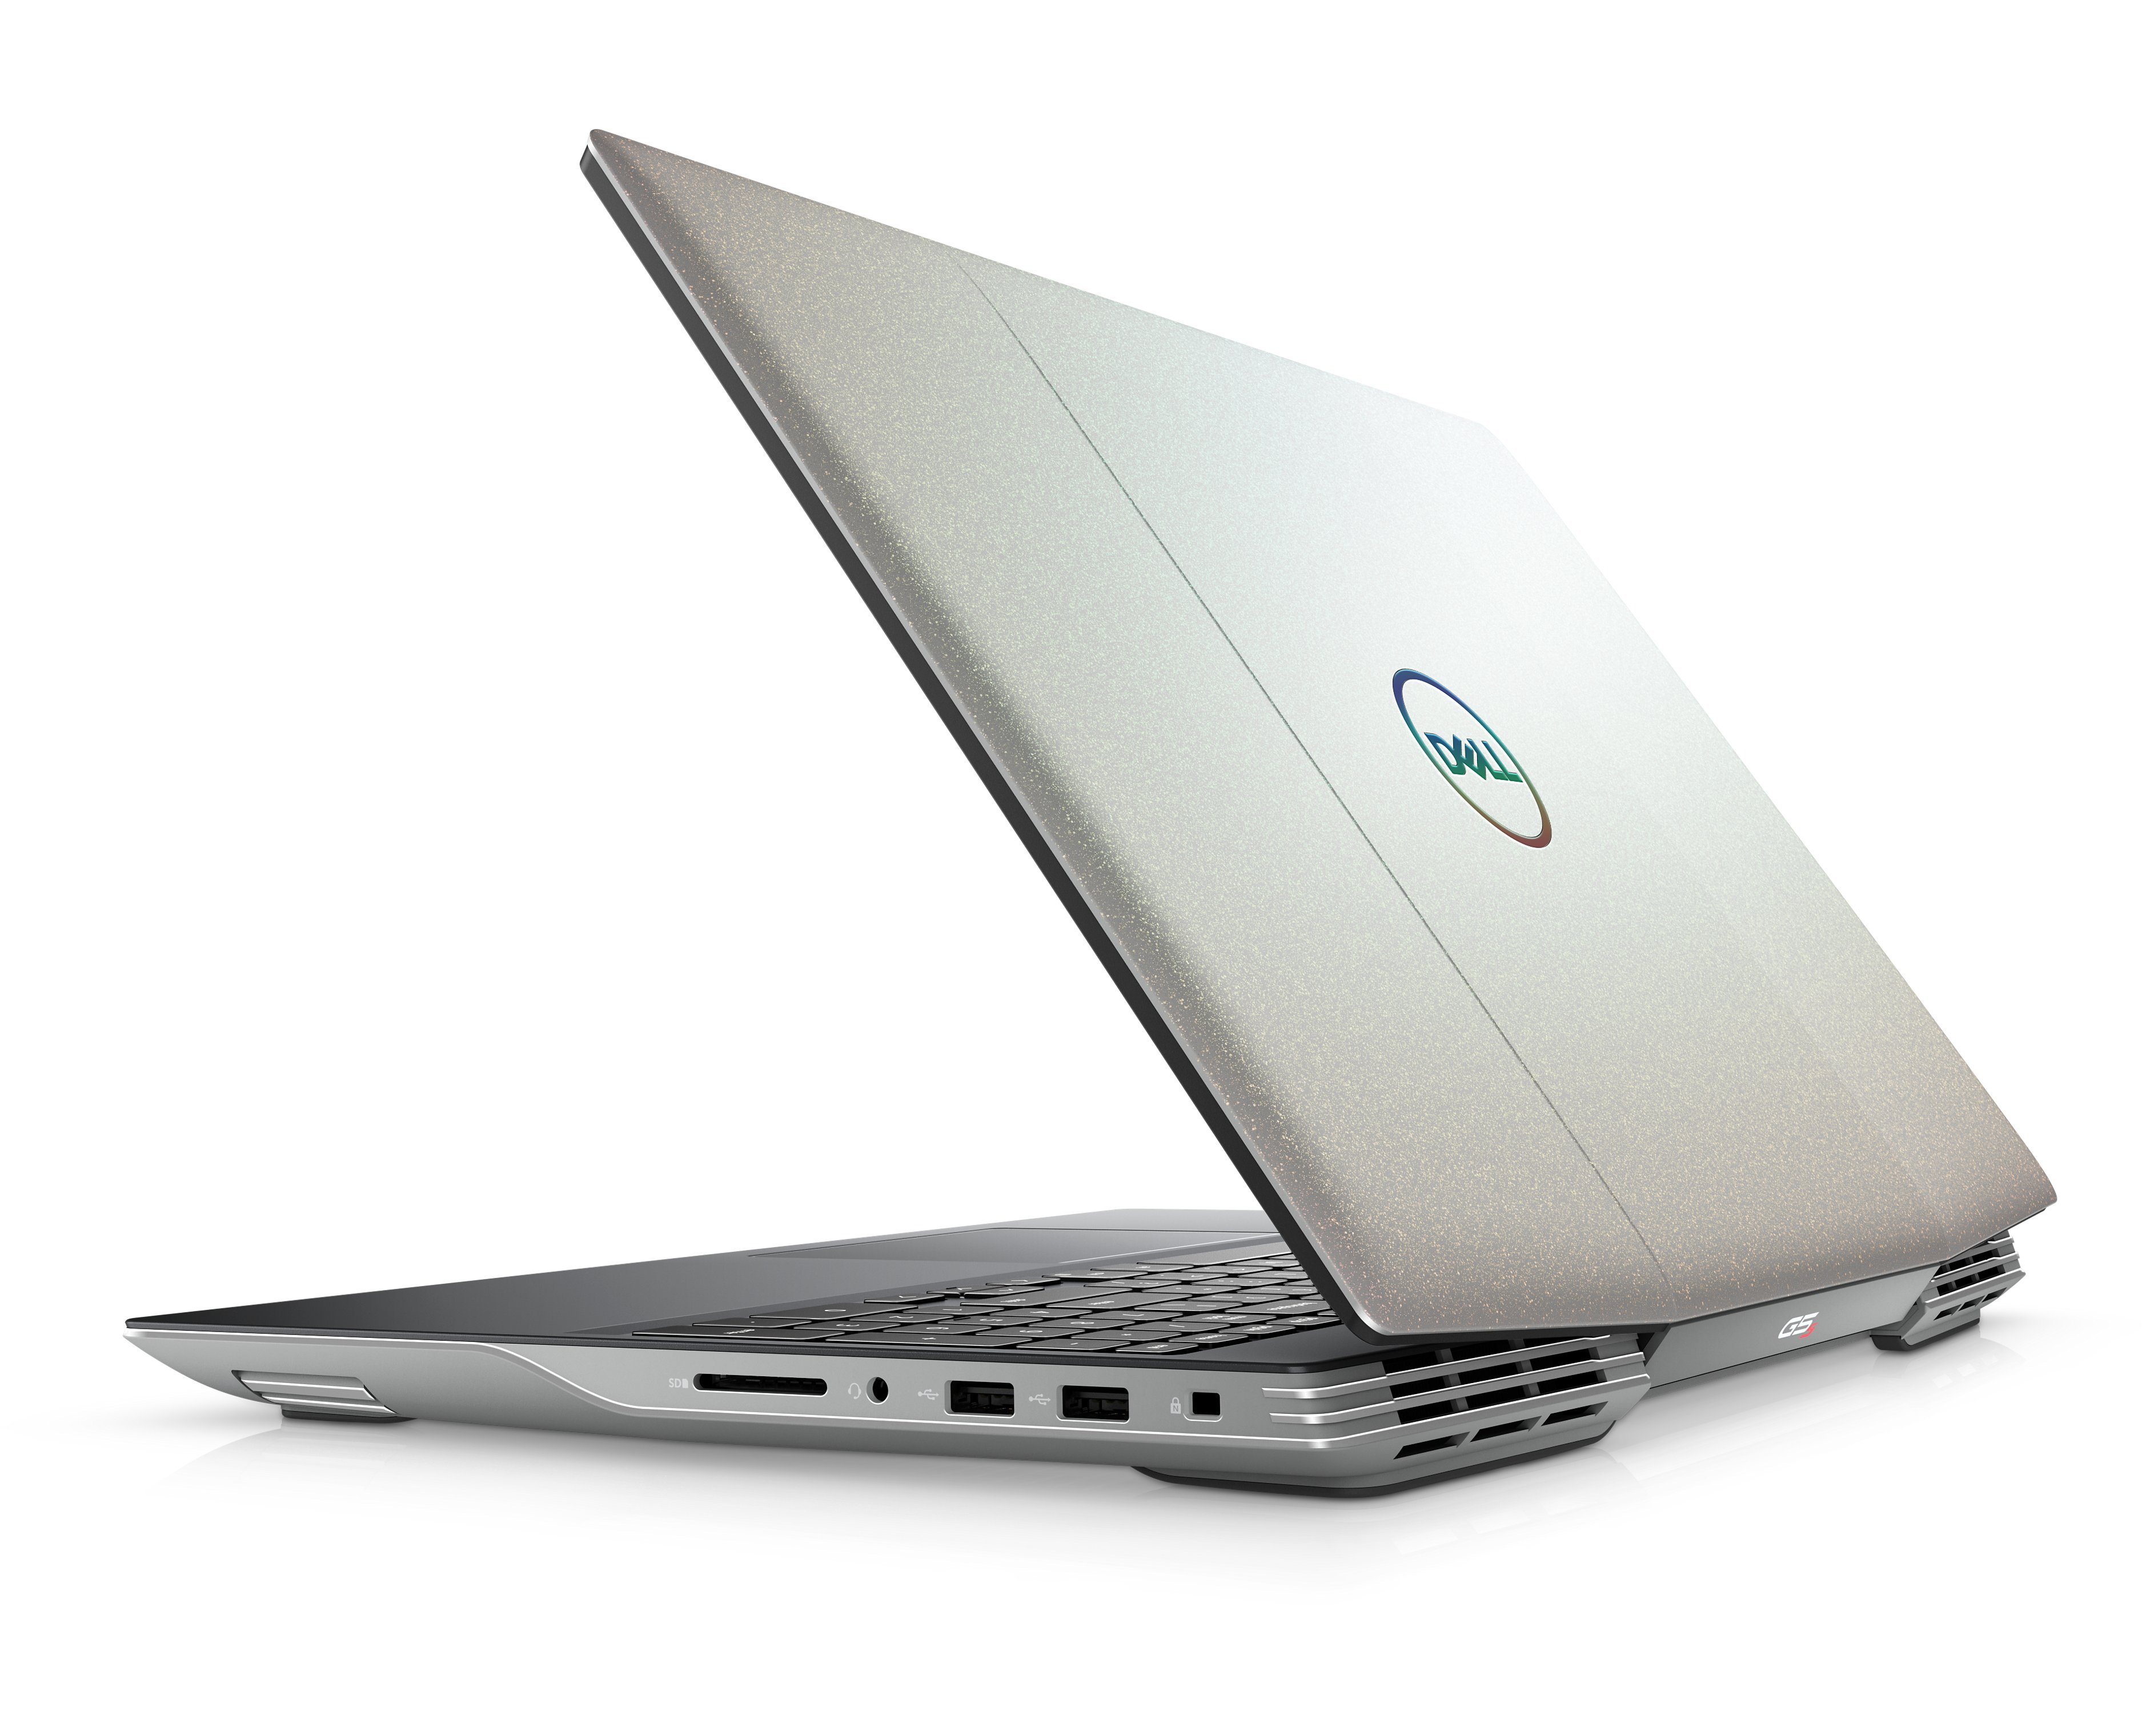 G-Series G5 15 5000 Non-Touch Gaming Notebook